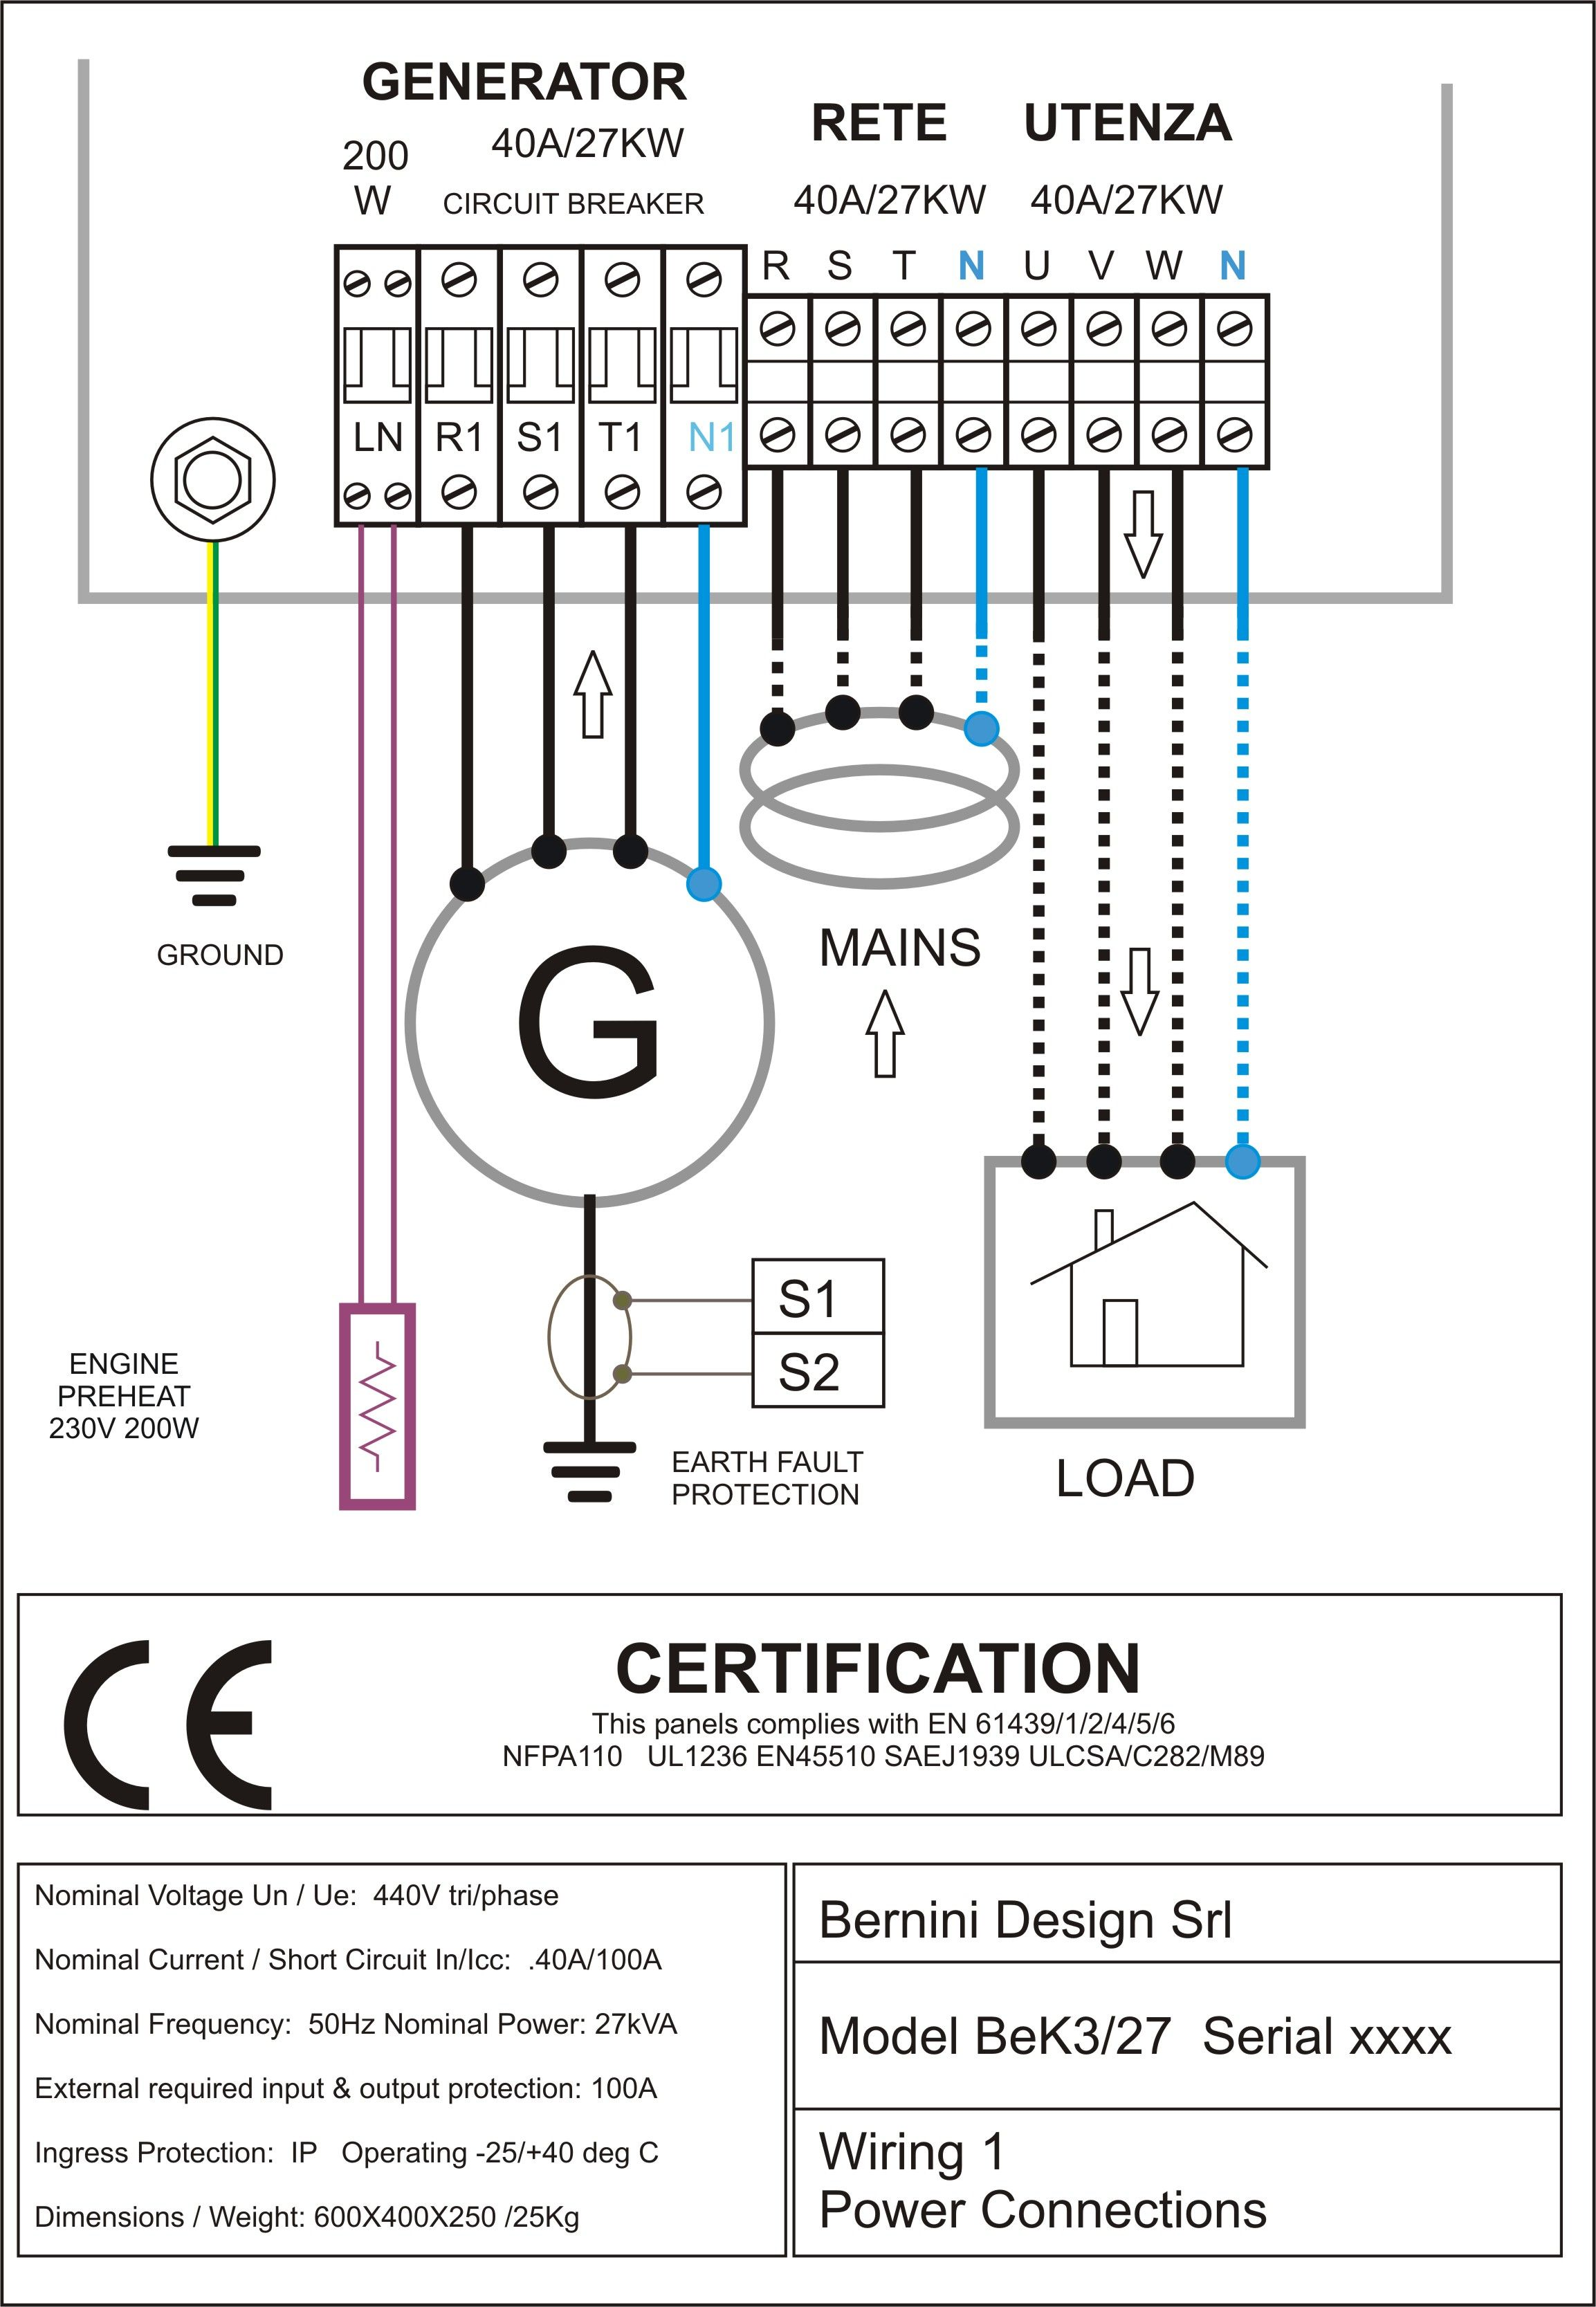 medium resolution of olympian generator control panel wiring diagram wiring diagram connection diagram olympian generator